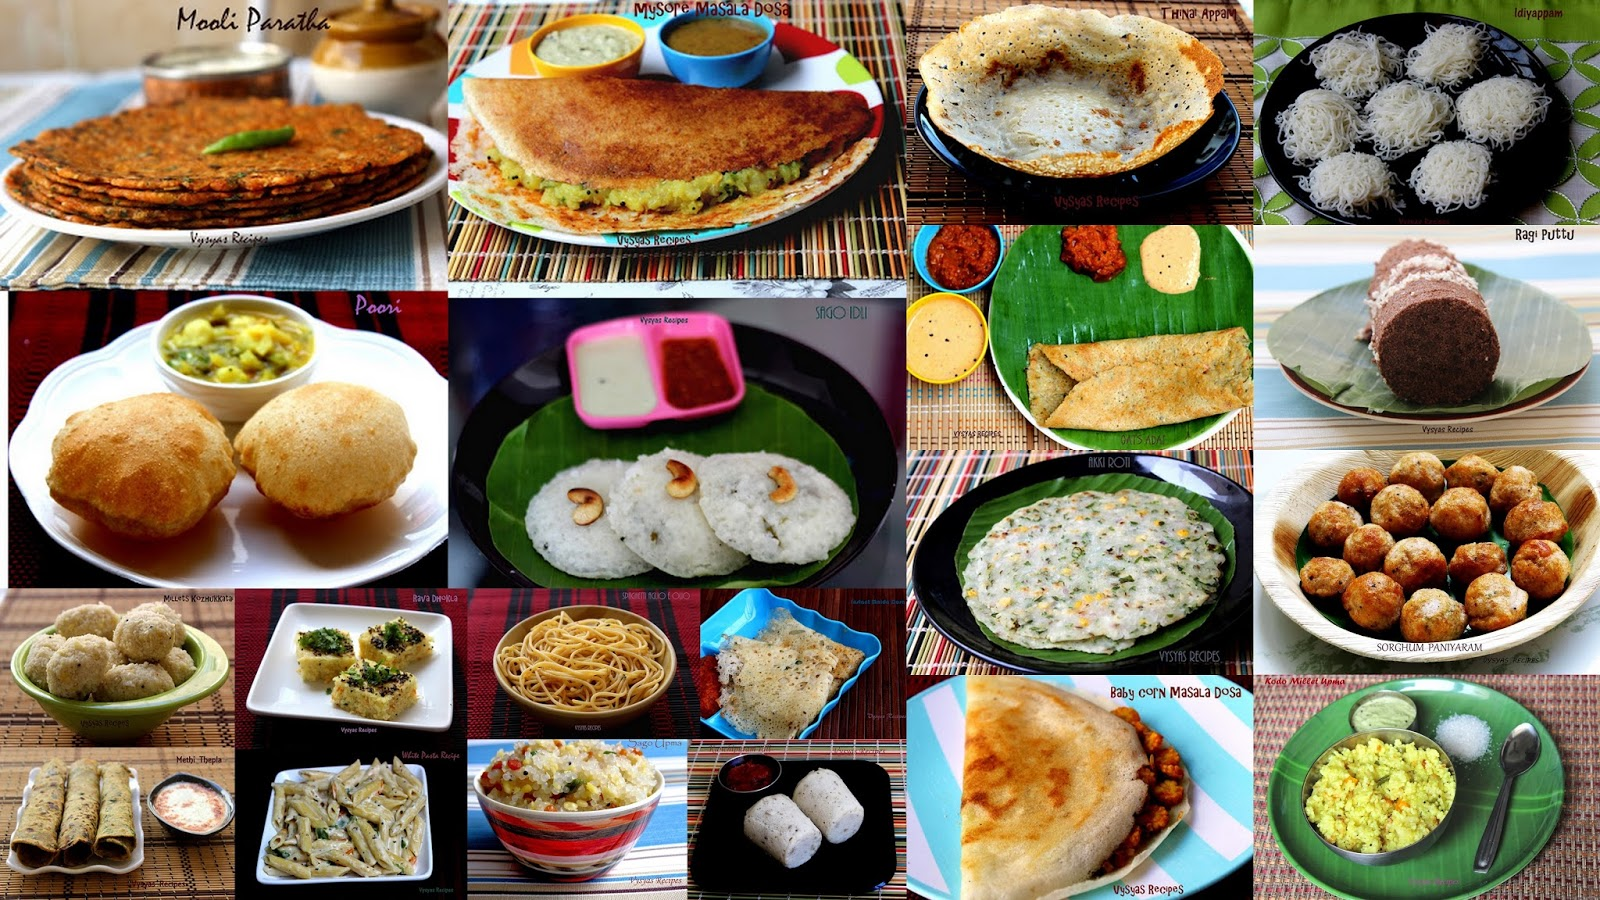 Vysyas delicious recipes 100 simple unique breakfast recipes break fast is considered as the important meal of the day break fast literally means breaking the fasting period of prior nightwikipedia forumfinder Image collections